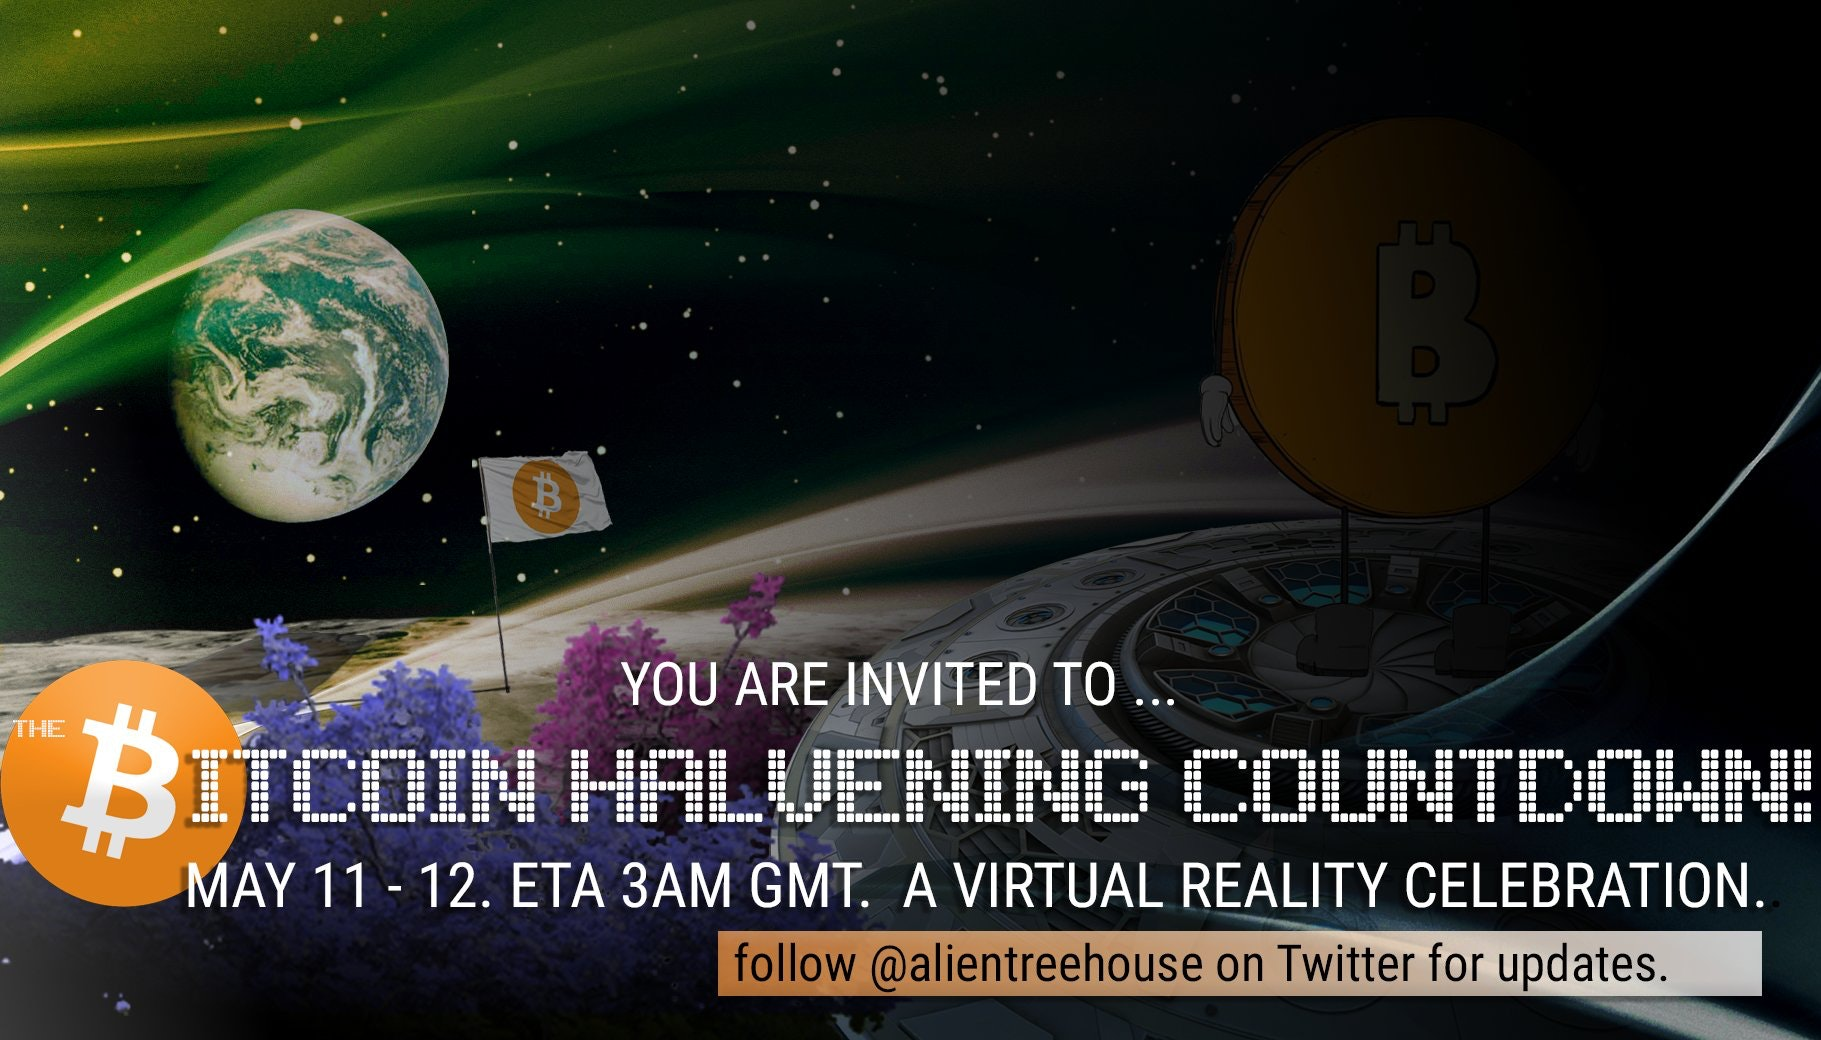 Bitcoin Halvening 2020 Party VR